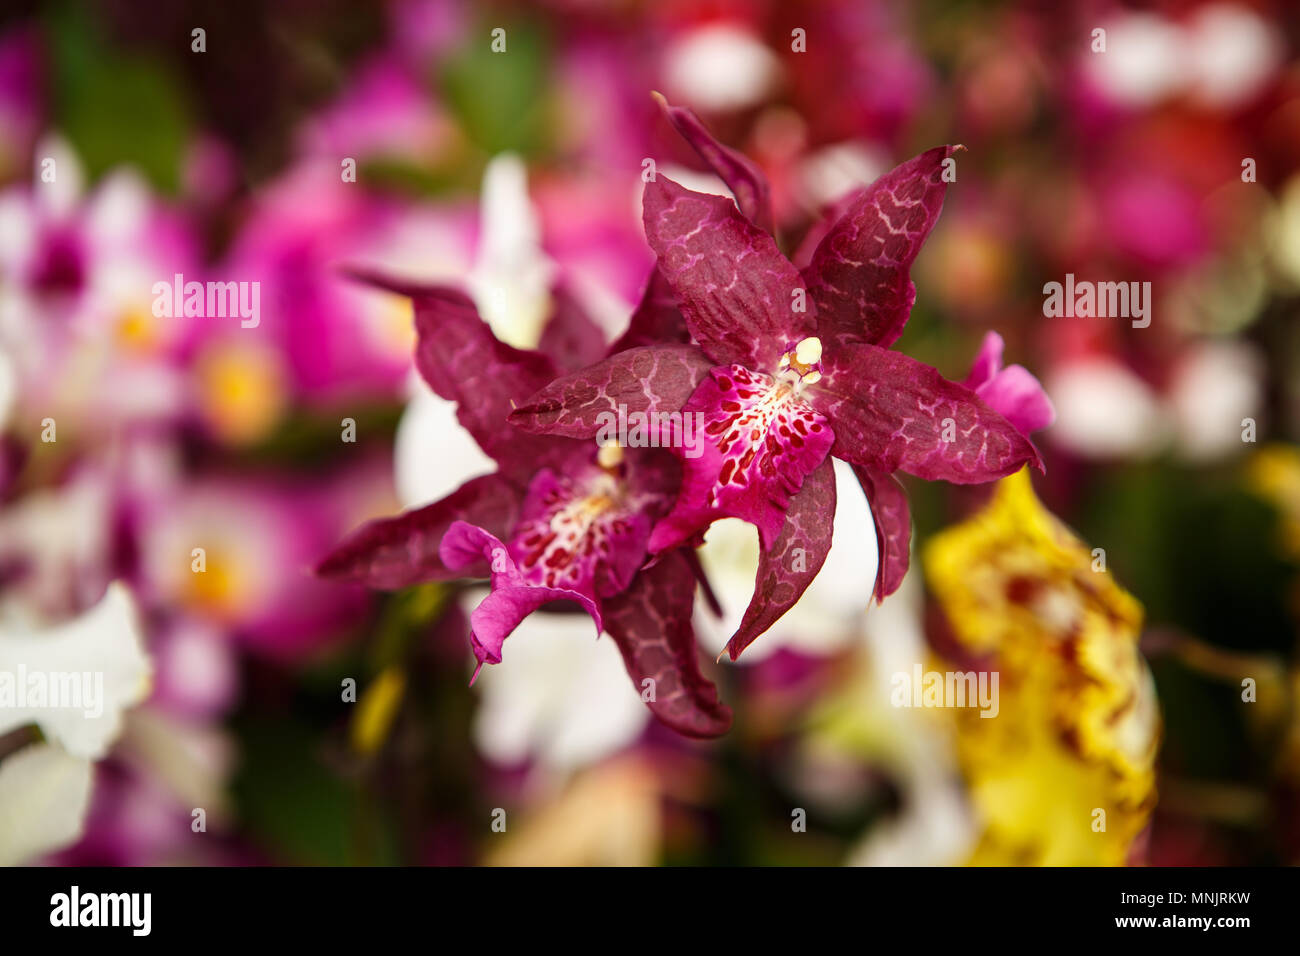 Field of pink lilies stock photos field of pink lilies stock beautiful colorful pink lilies flowers bloom in spring gardencorative wallpaper with red lilium flower izmirmasajfo